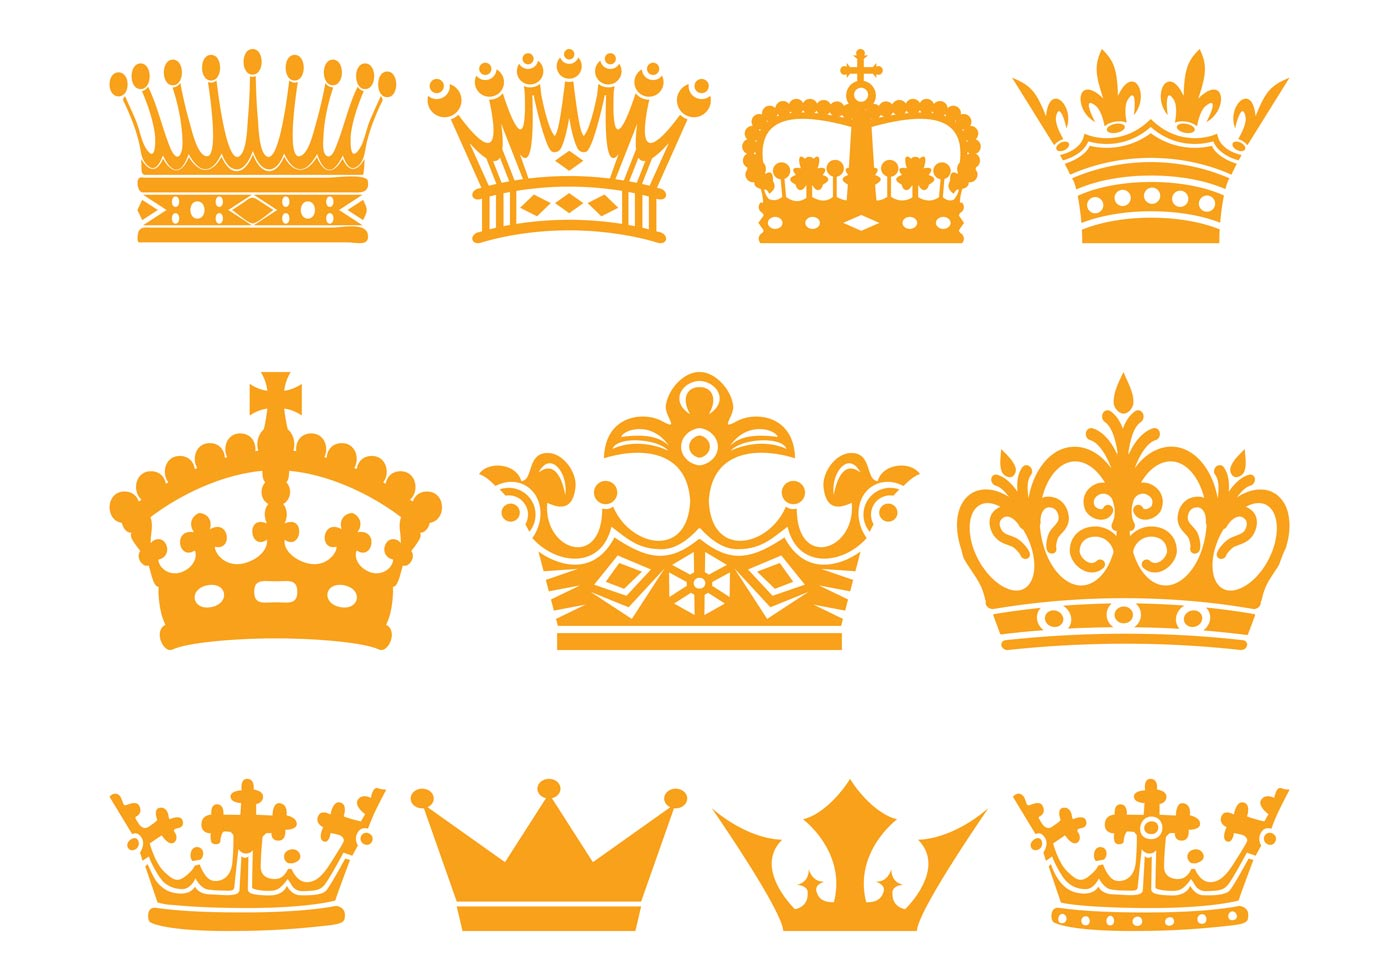 crowns set download free vector art  stock graphics   images crown vector free crown vector image